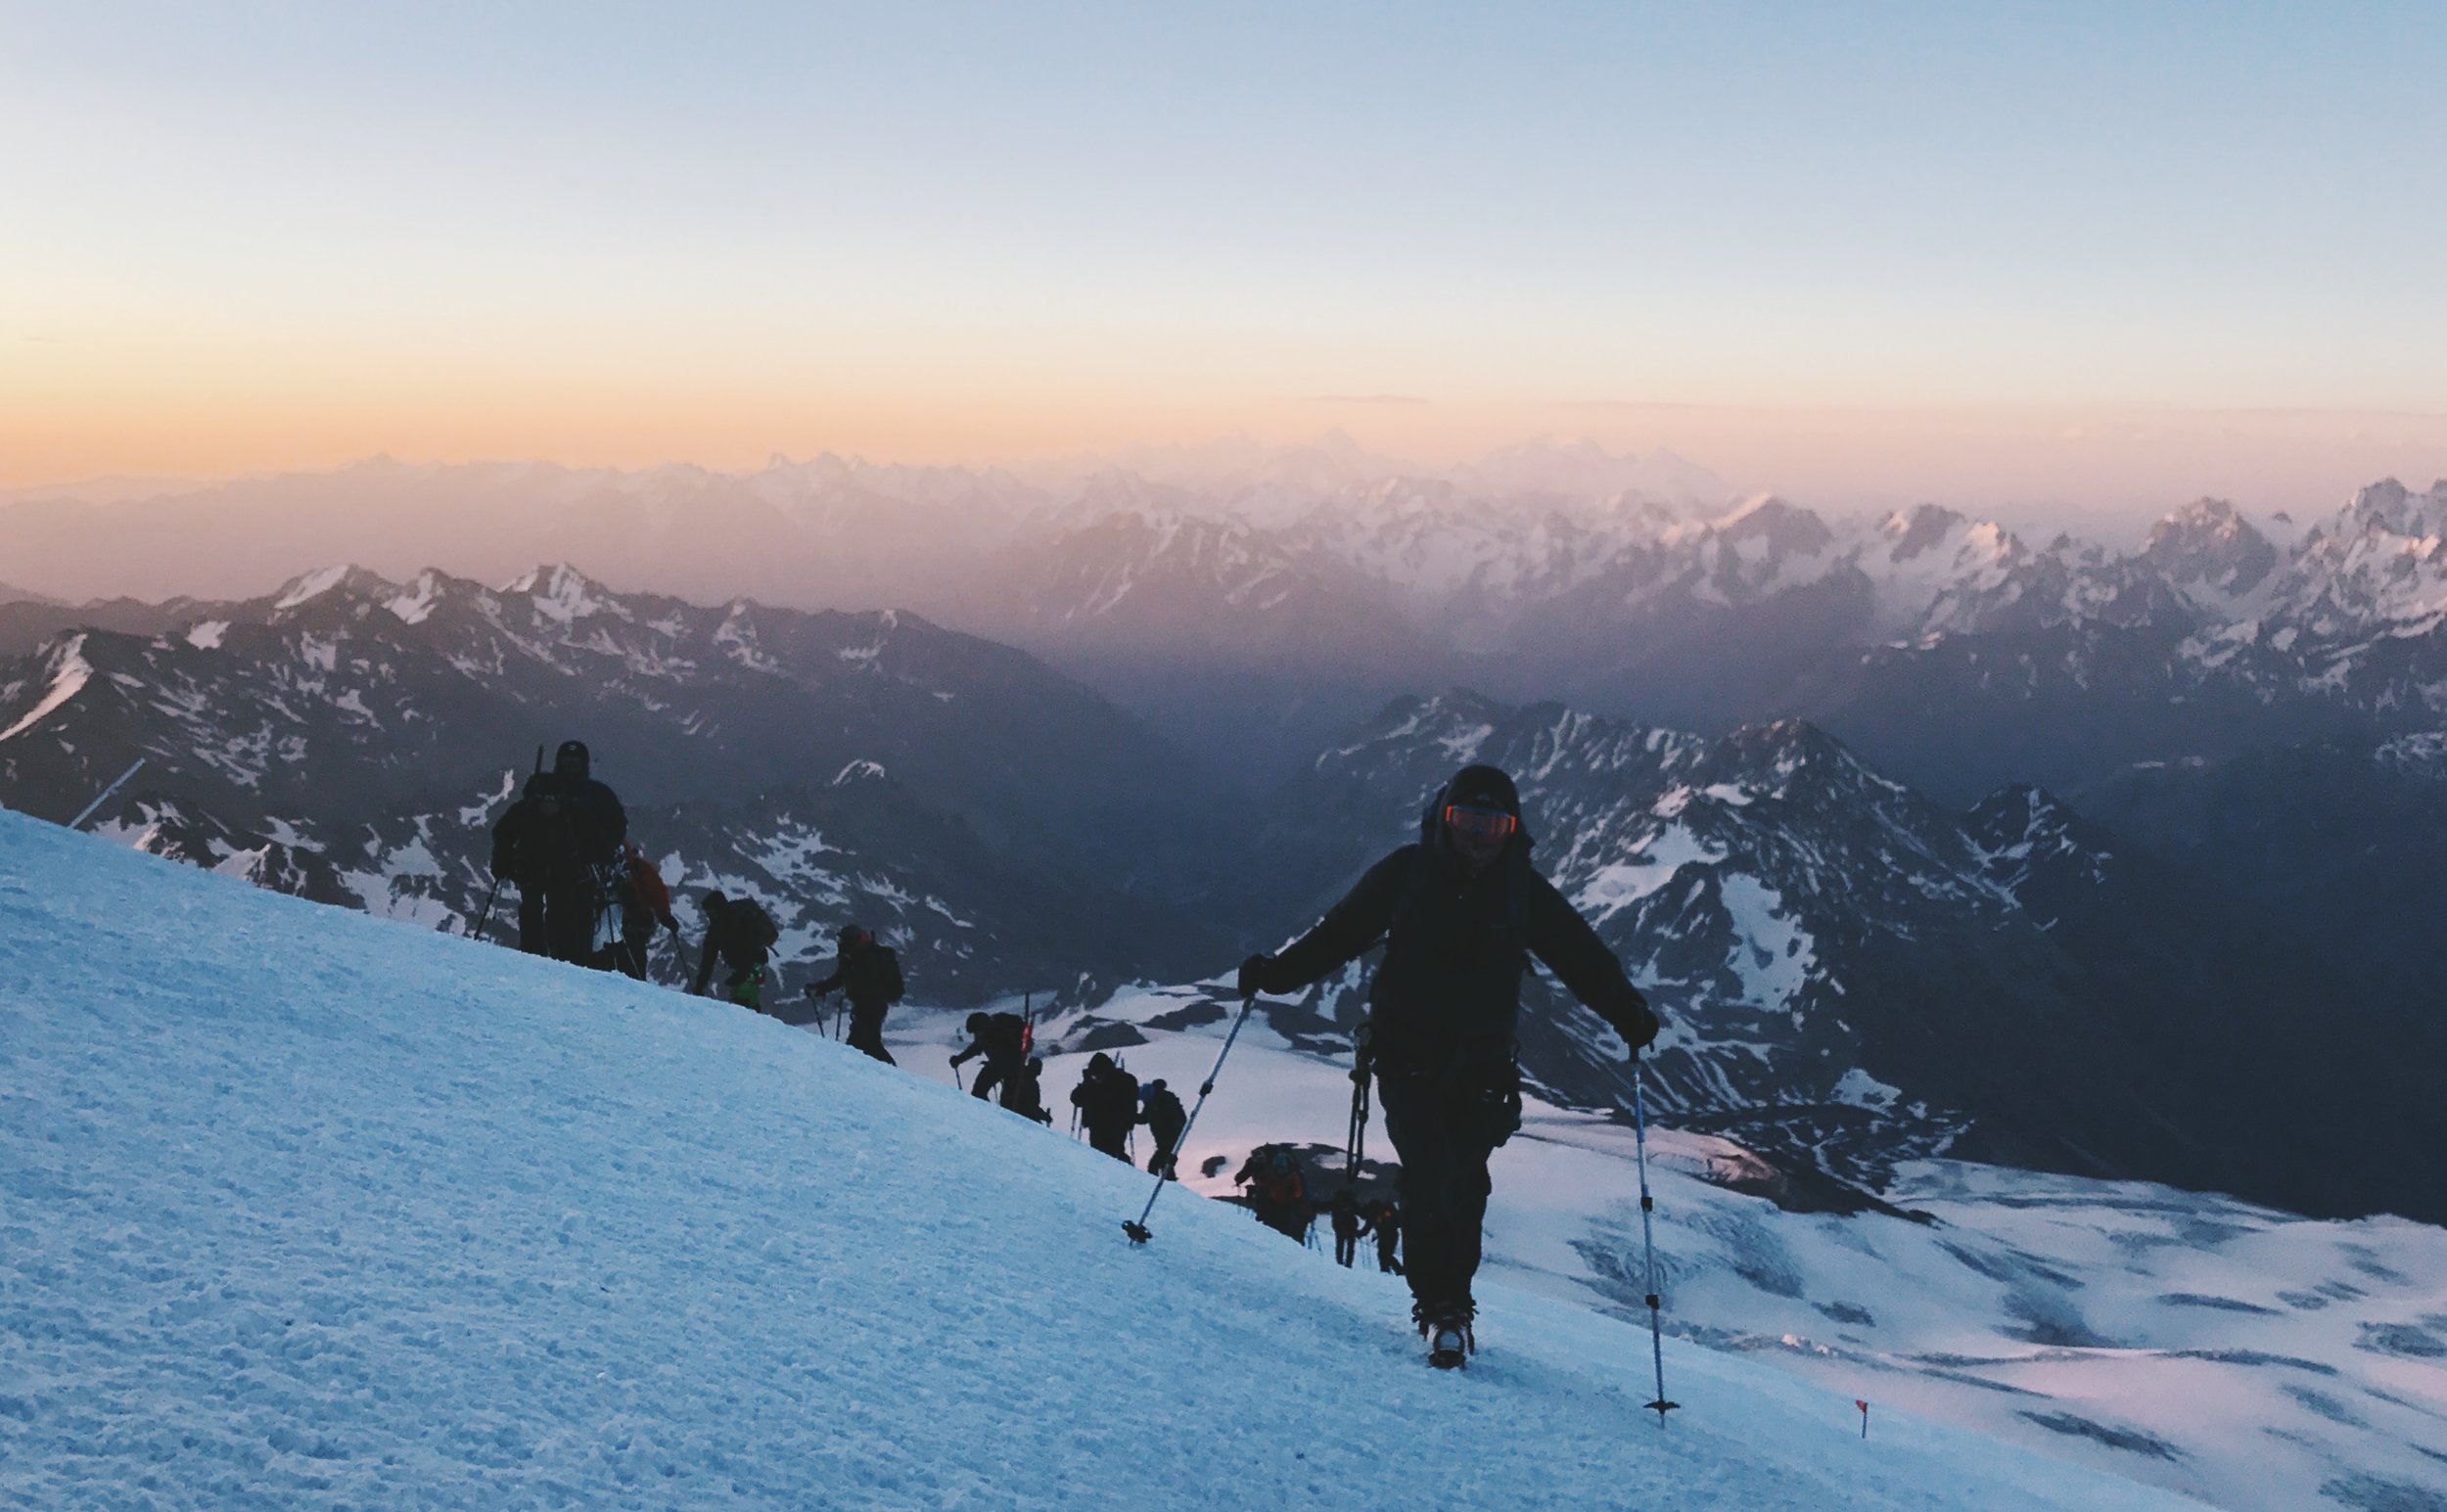 ELBRUS EXPEDITION - PACKING + GEAR GUIDE